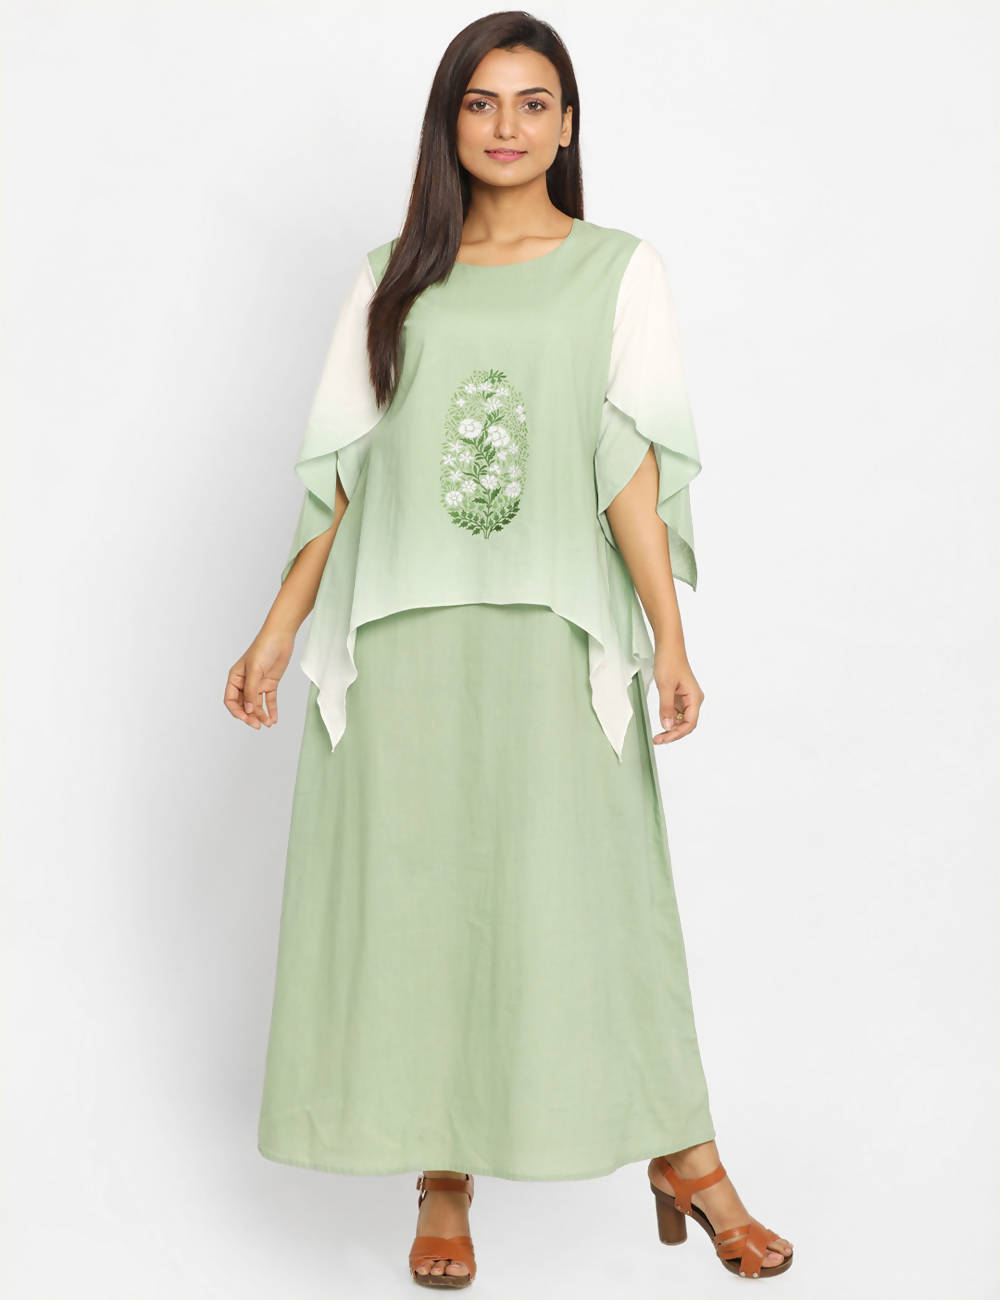 Pastel Green Handwoven Cotton Kurta Dress